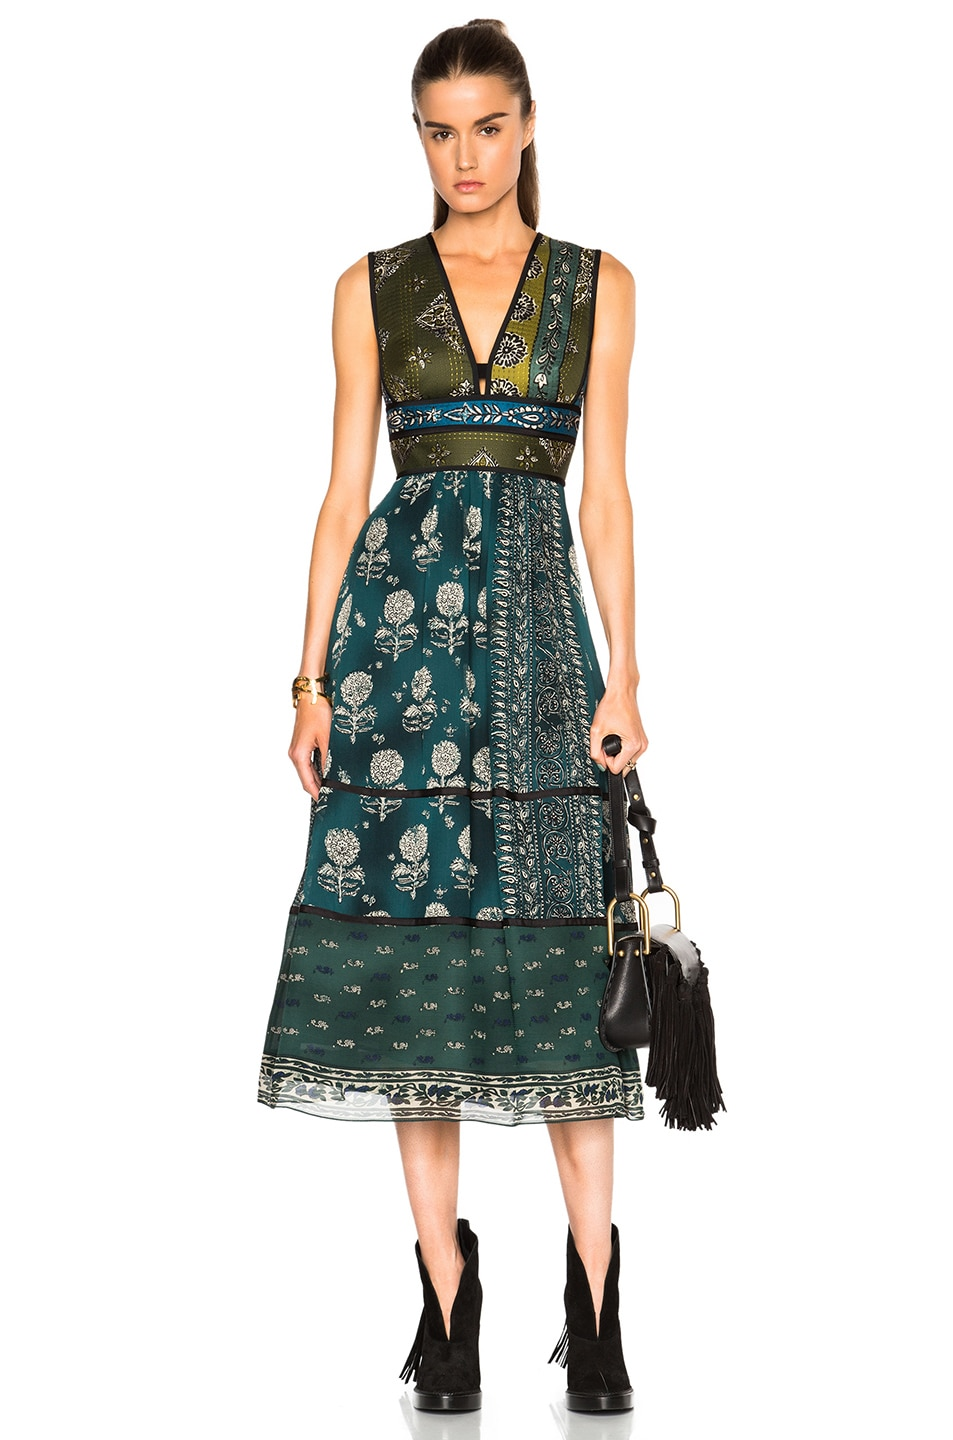 Burberry Prorsum Geometric Floral Print Silk Crepon Dress in Blue,Floral,Green